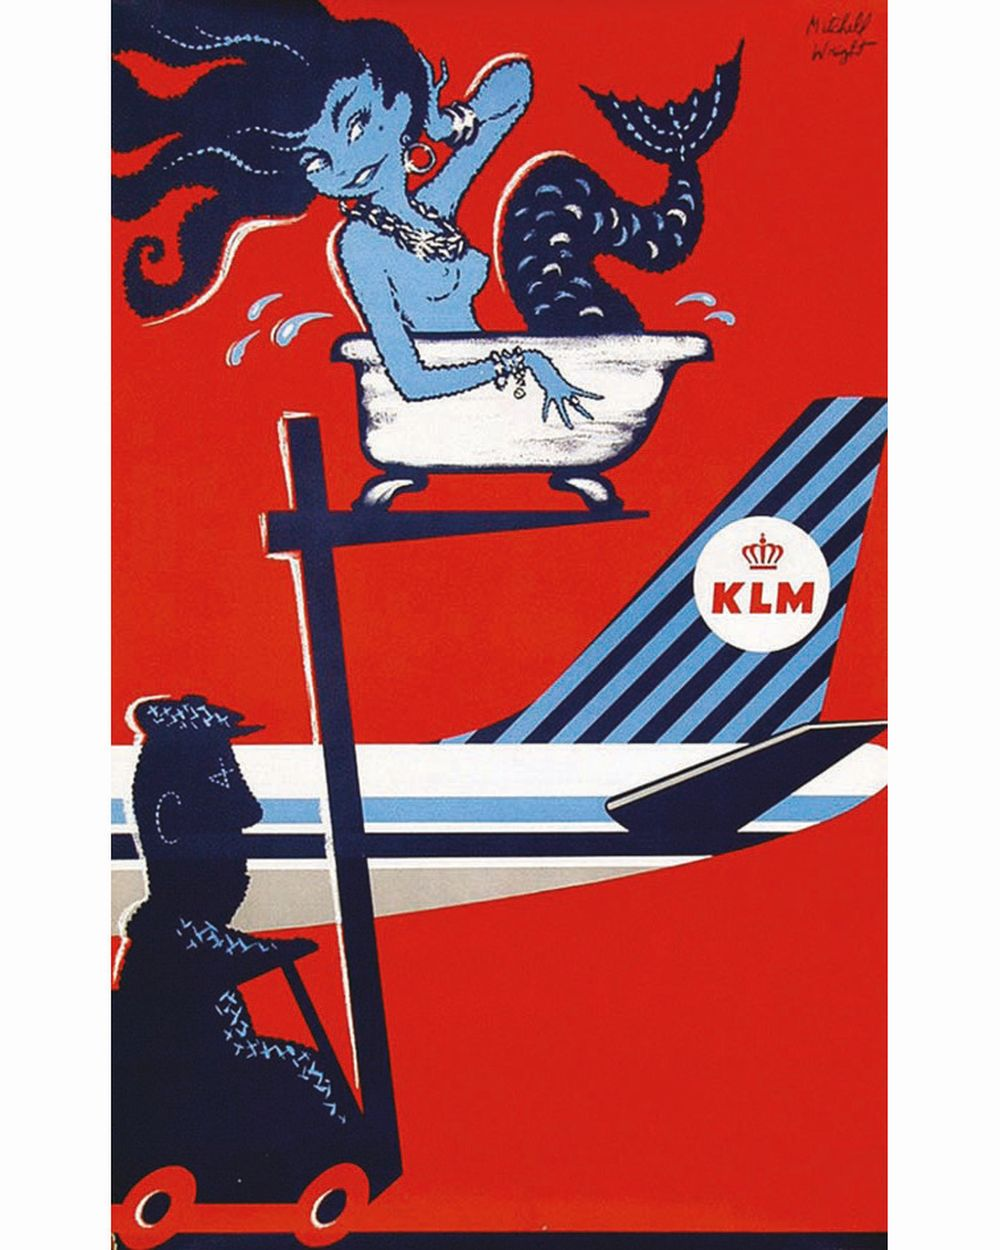 WRIGHT MITCHELL - KLM Royal Dutch Airlines ( affiche rouge )